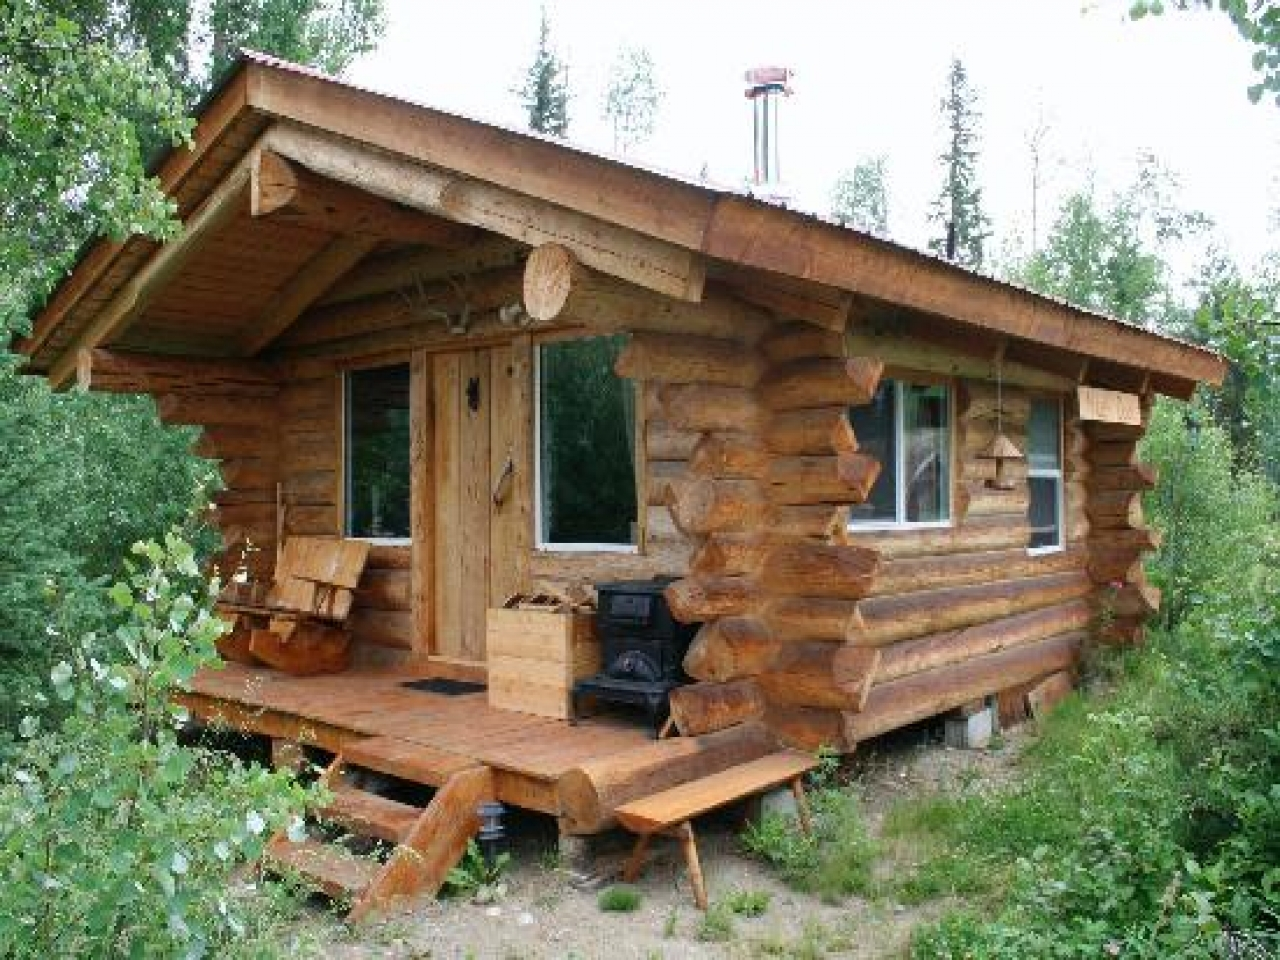 Tiny Home Designs: Small Ranch House Plans Small Cabin Home Plans, Easy Build